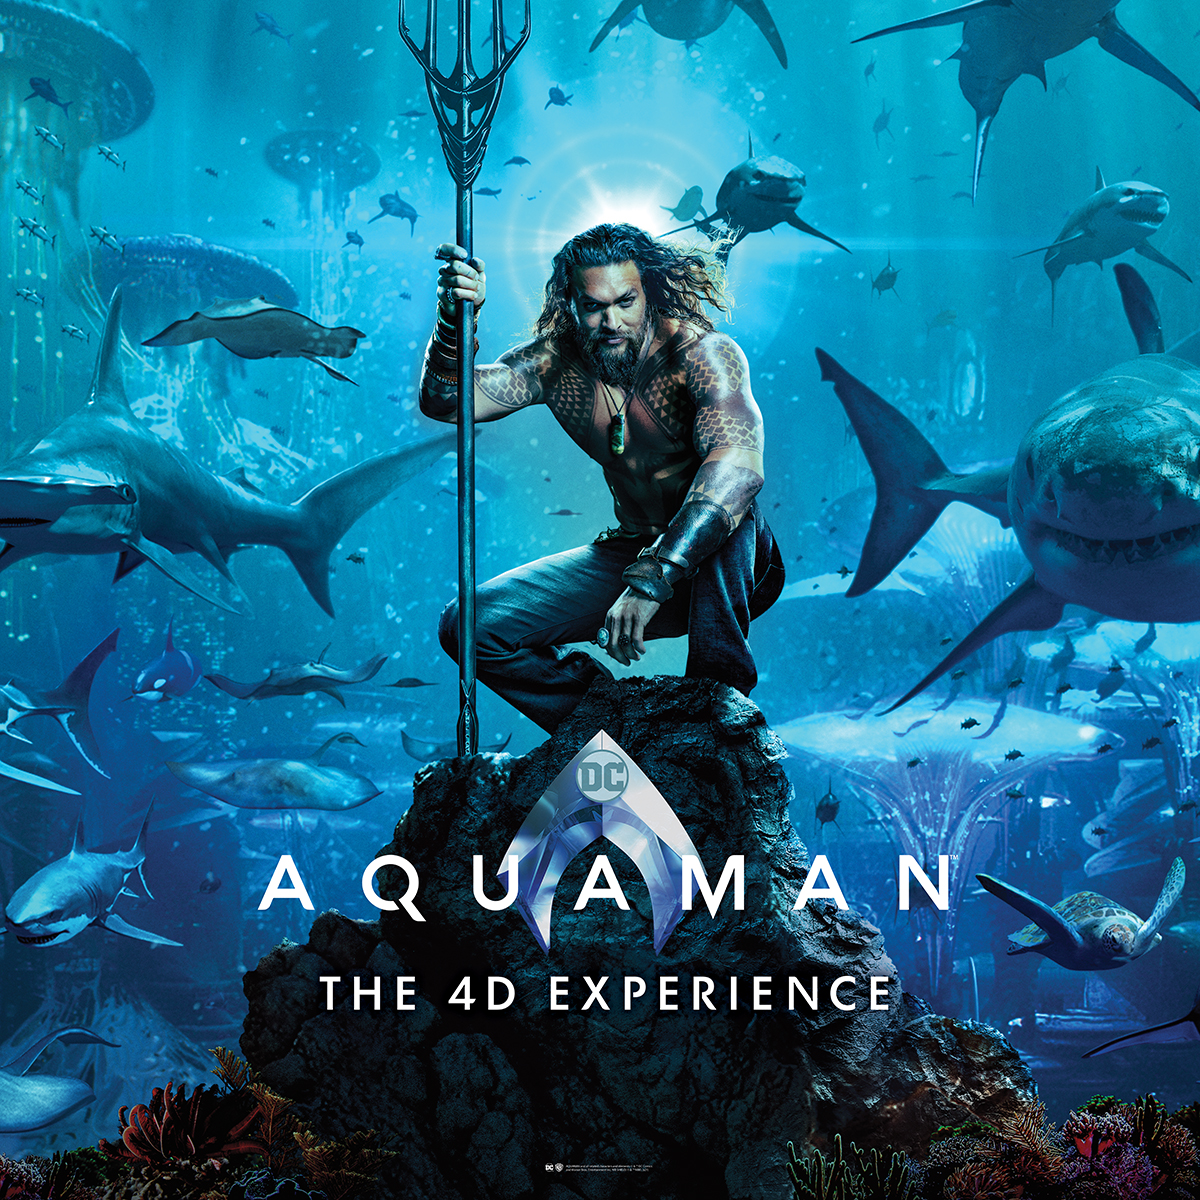 4D Ultimate Experience - 4D Experience Aquaman